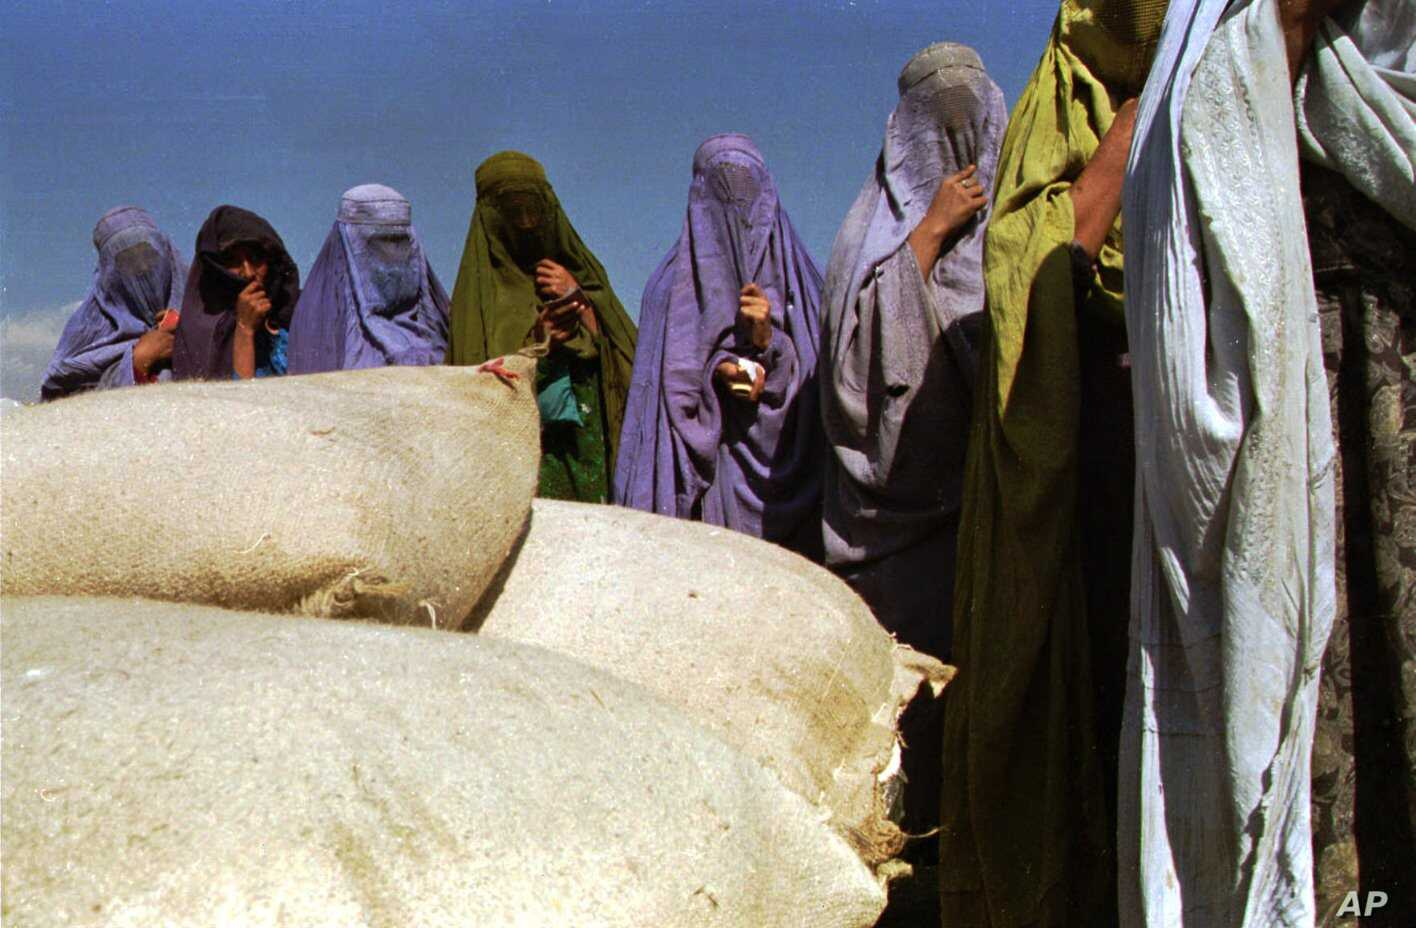 FILE - A group of women wearing burqas, most of them widows, await food aid at a distribution center run by the International Committee of the Red Cross in Kabul, Afghanistan, Oct. 13, 1996.